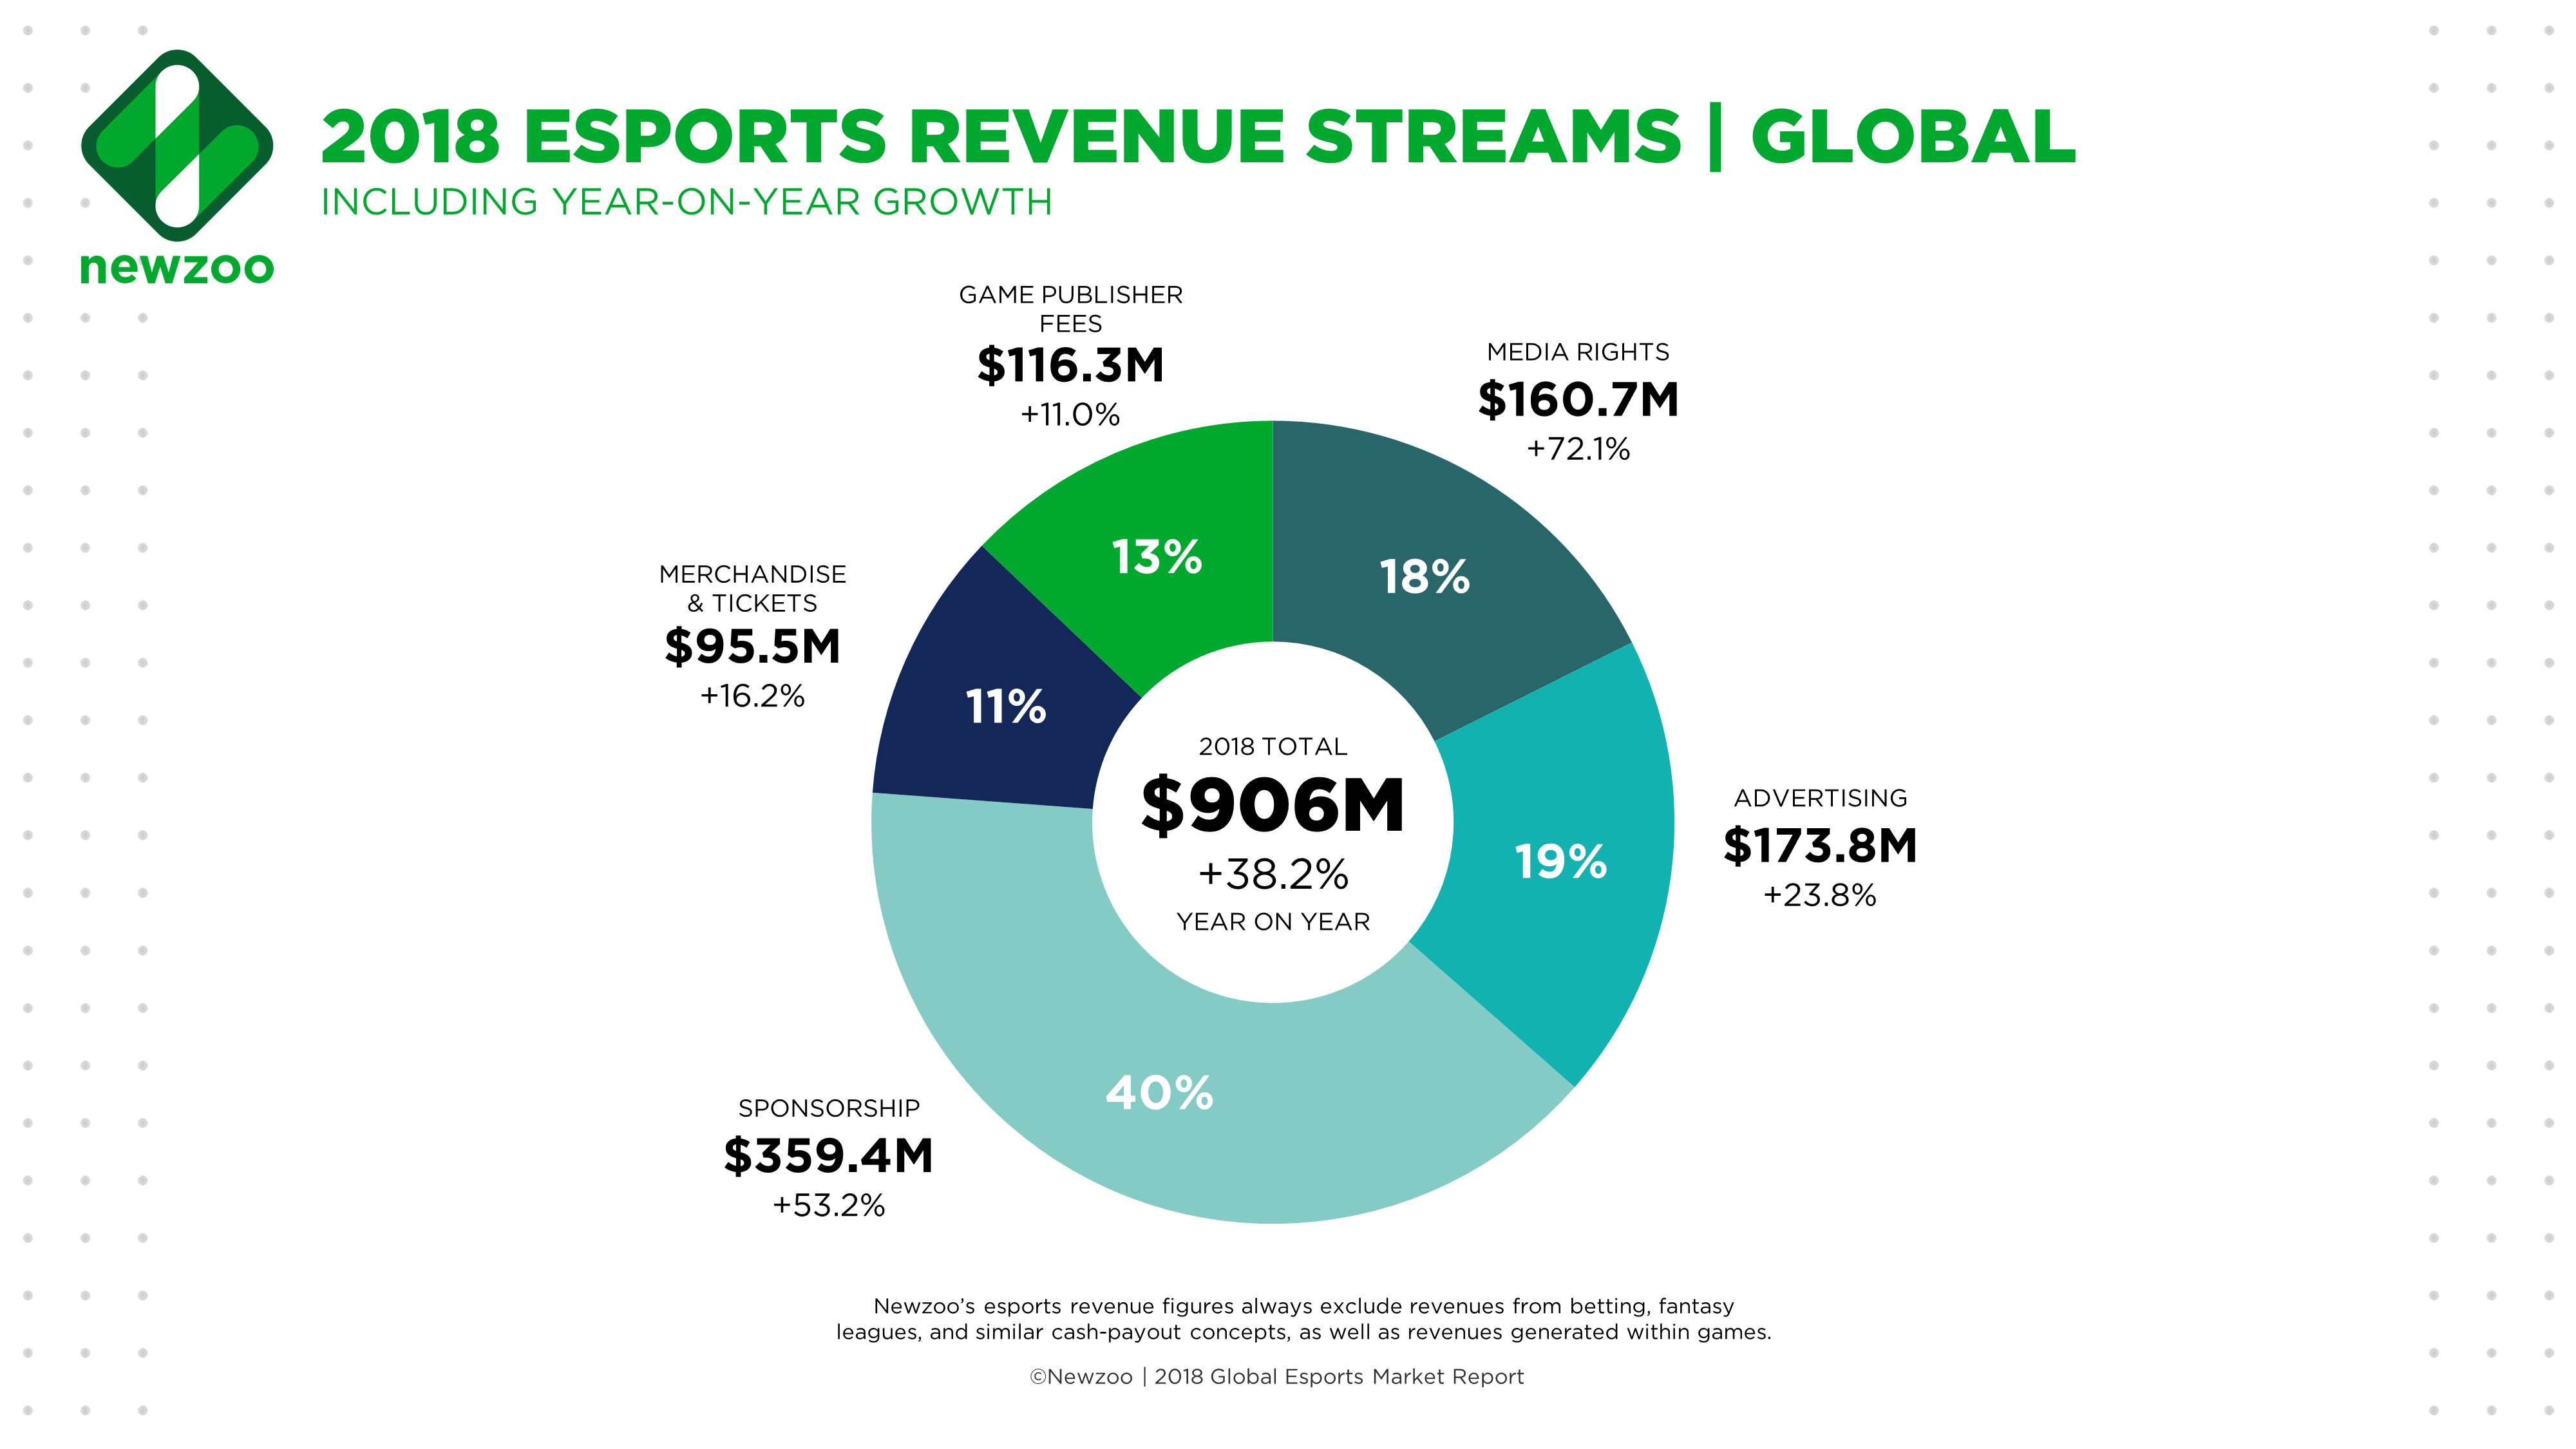 Newzoo_Esports_Revenue_Streams_Global